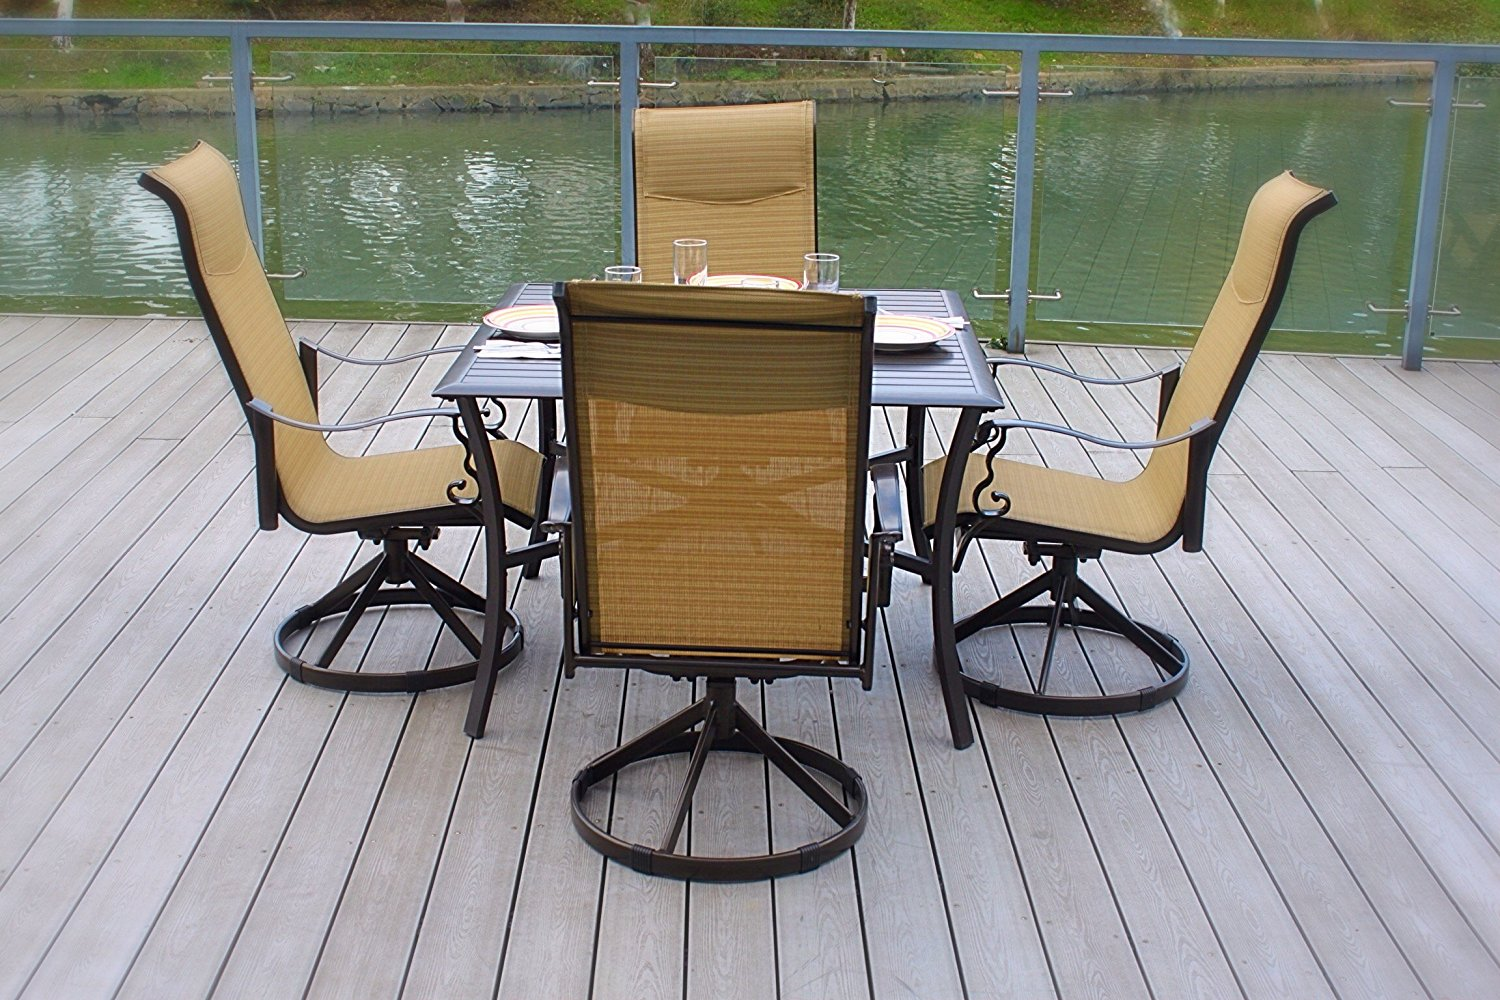 5pc Cast Aluminum Swivel Patio Furniture Dining Room Set with Slat Top Table- Bronze & Cream by